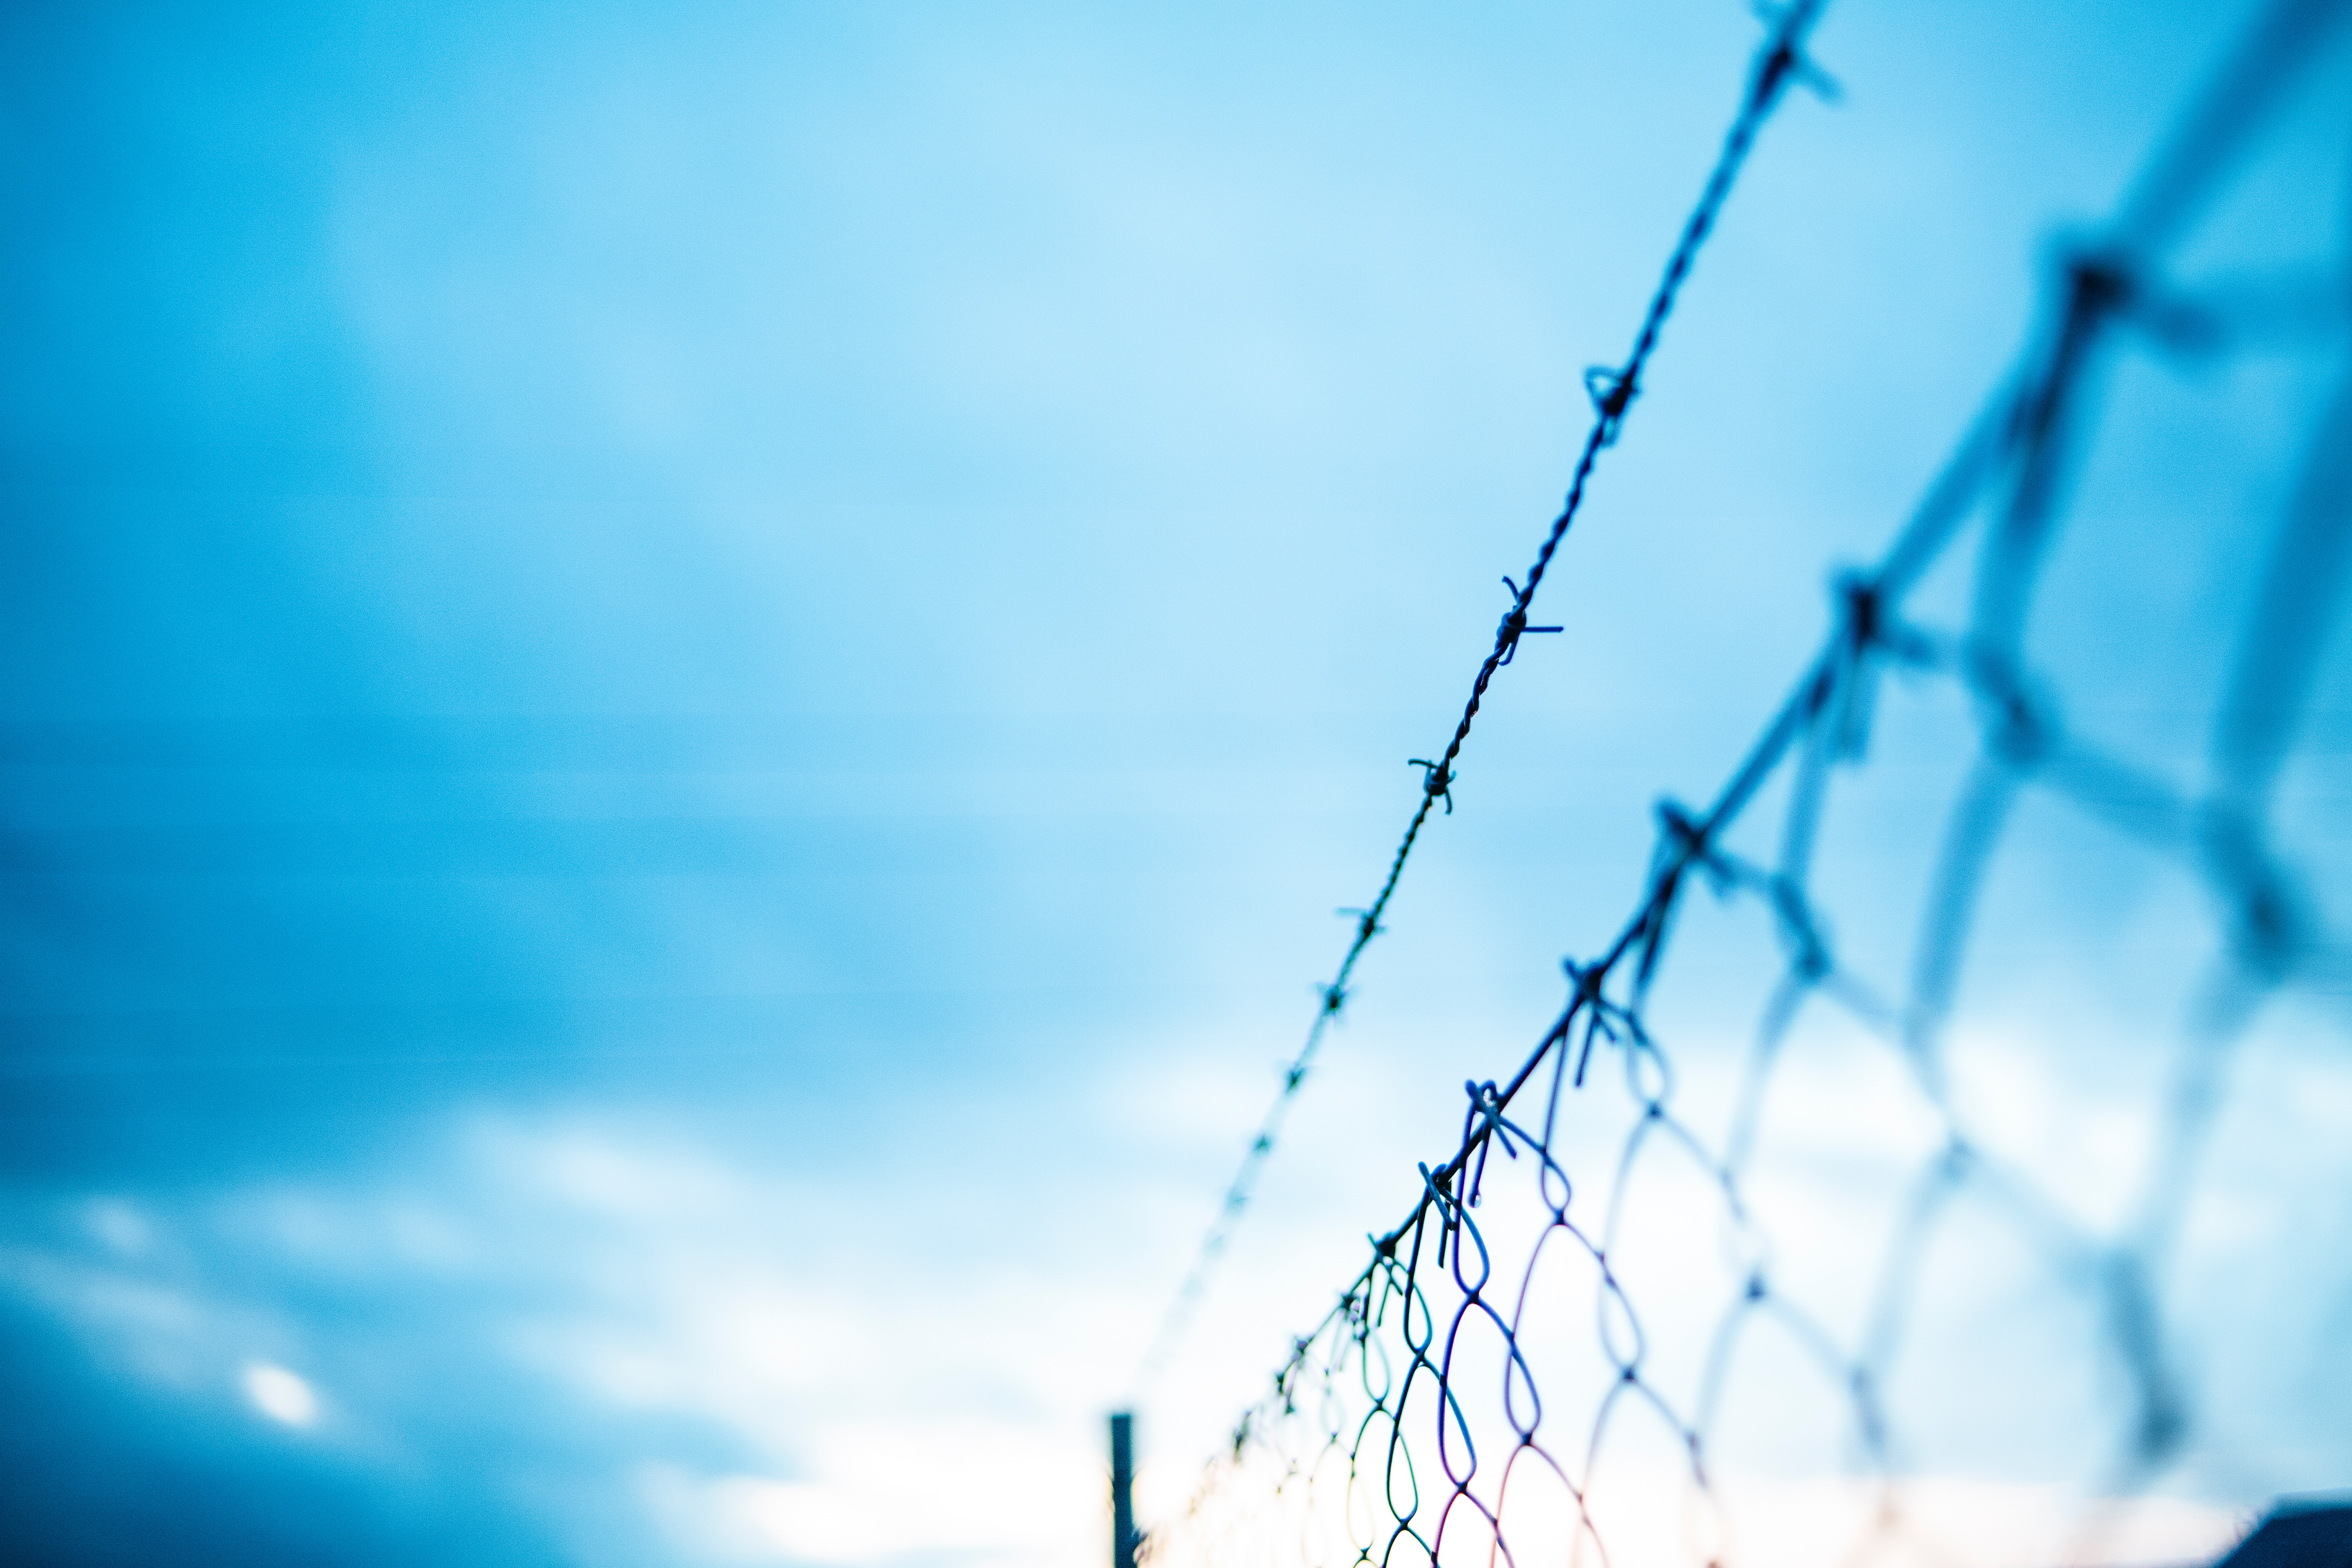 103056 download wallpaper Macro, Grid, Fence, Barbed, Spiny, Fencing, Enclosure, Barbed Wire screensavers and pictures for free